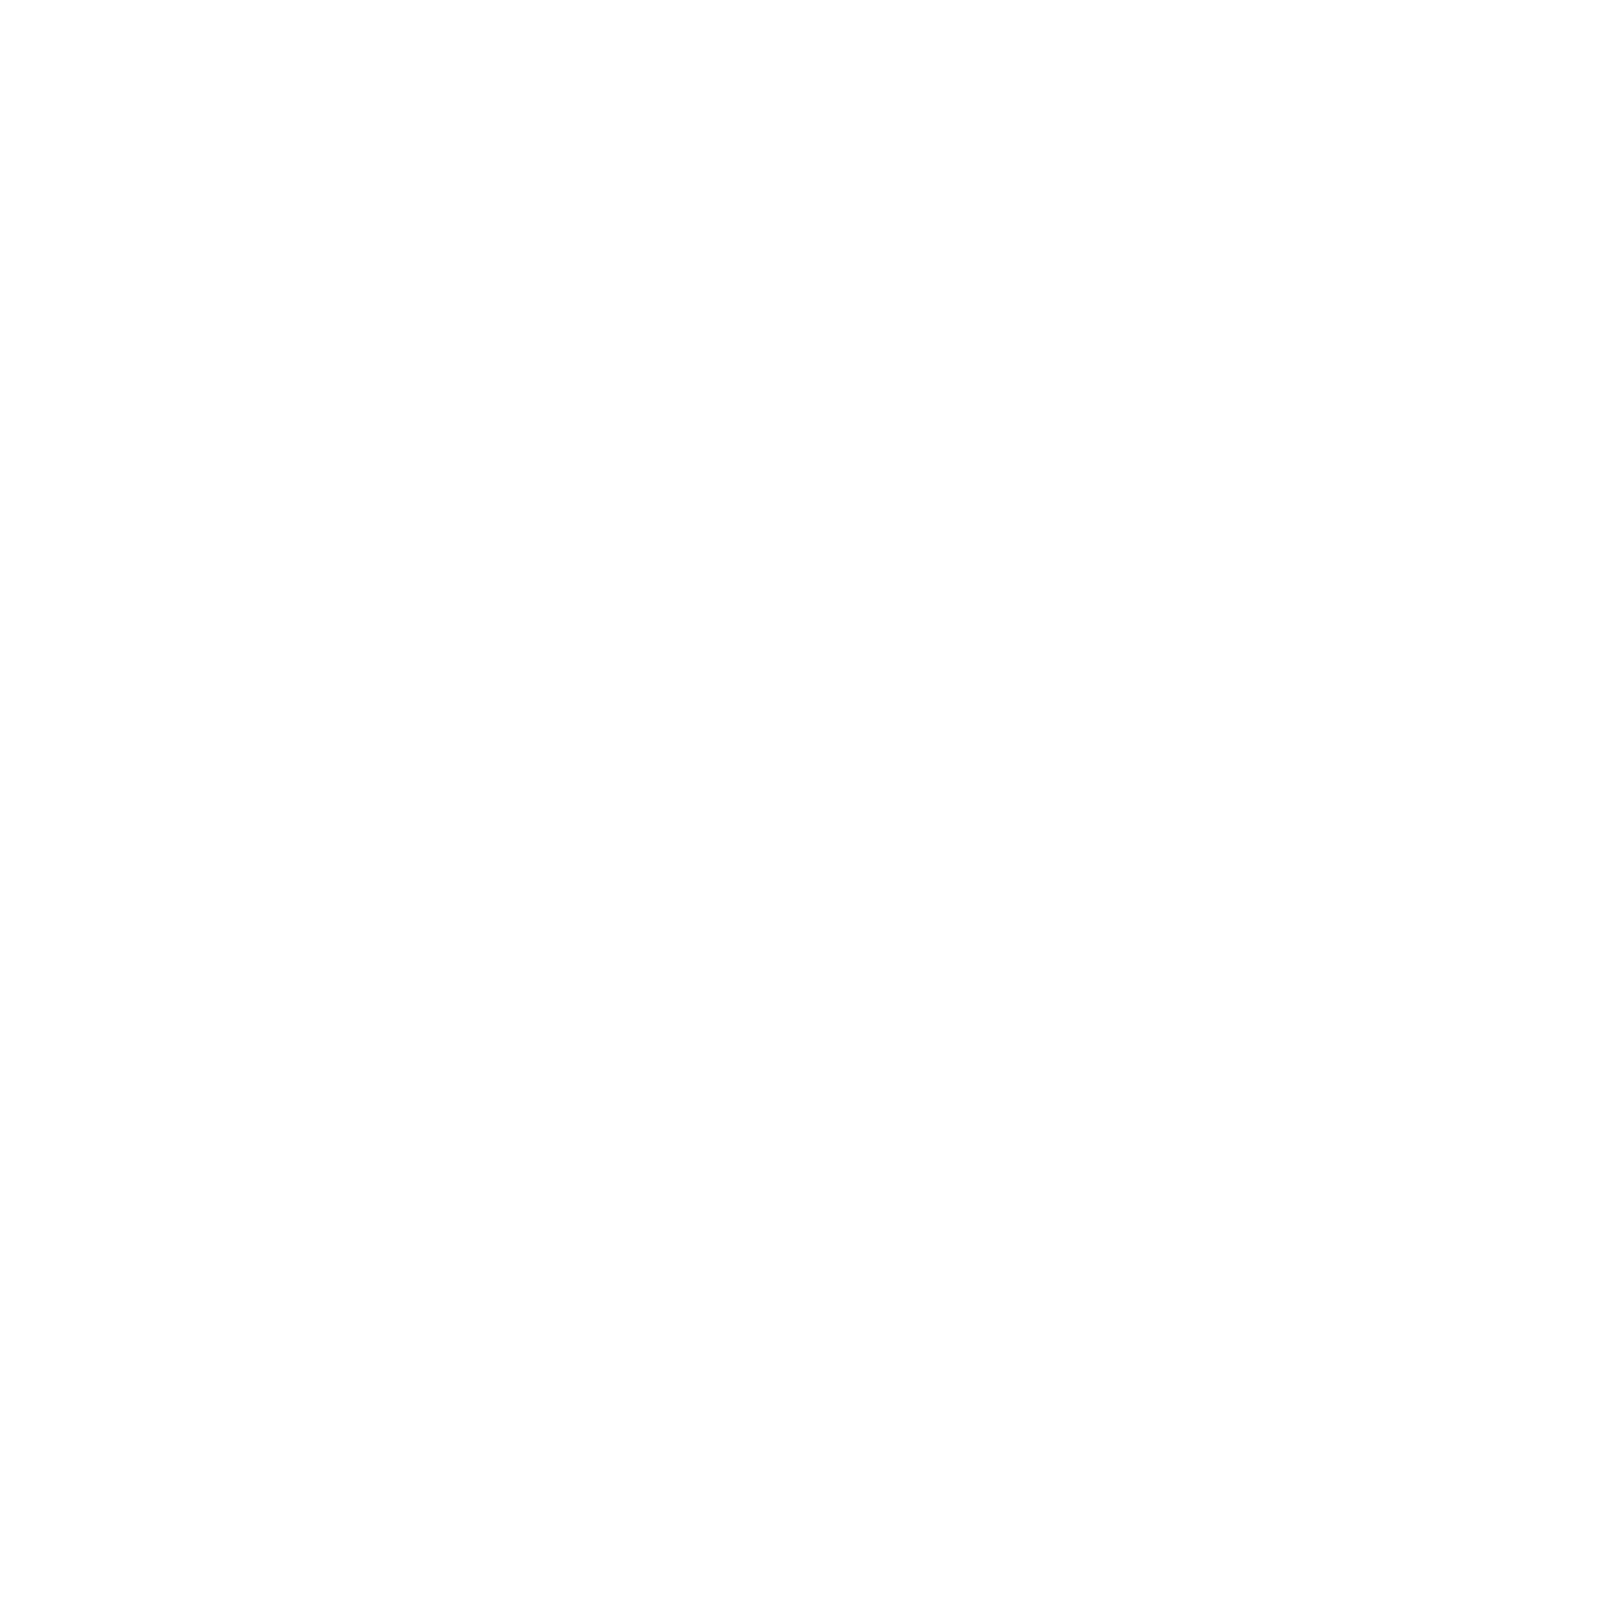 NHS-project-logo